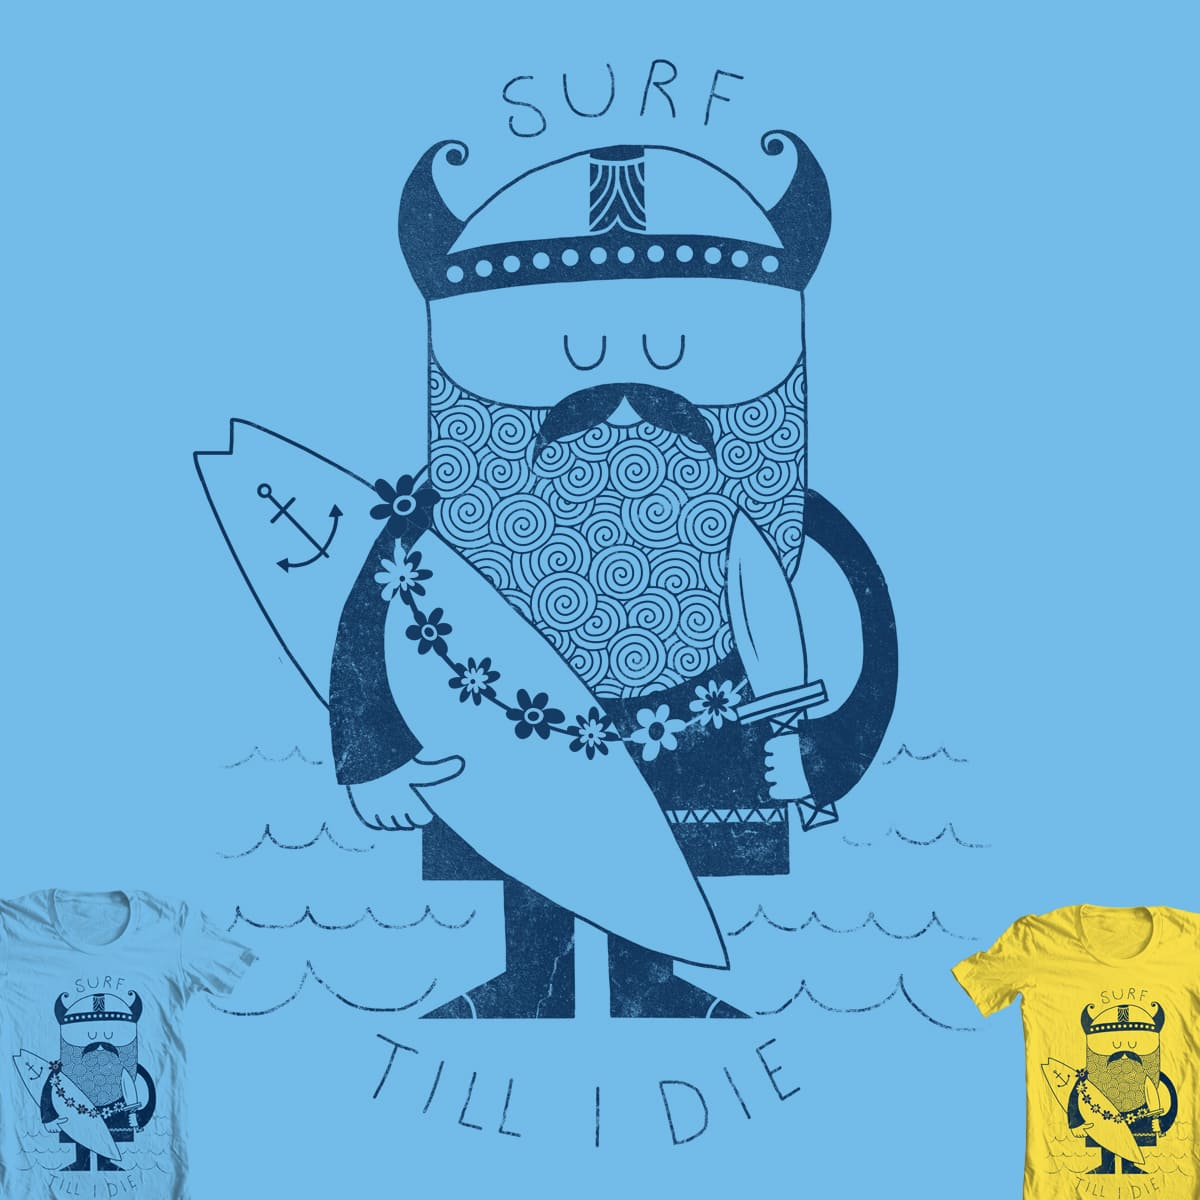 Surf till I die by Farnell on Threadless